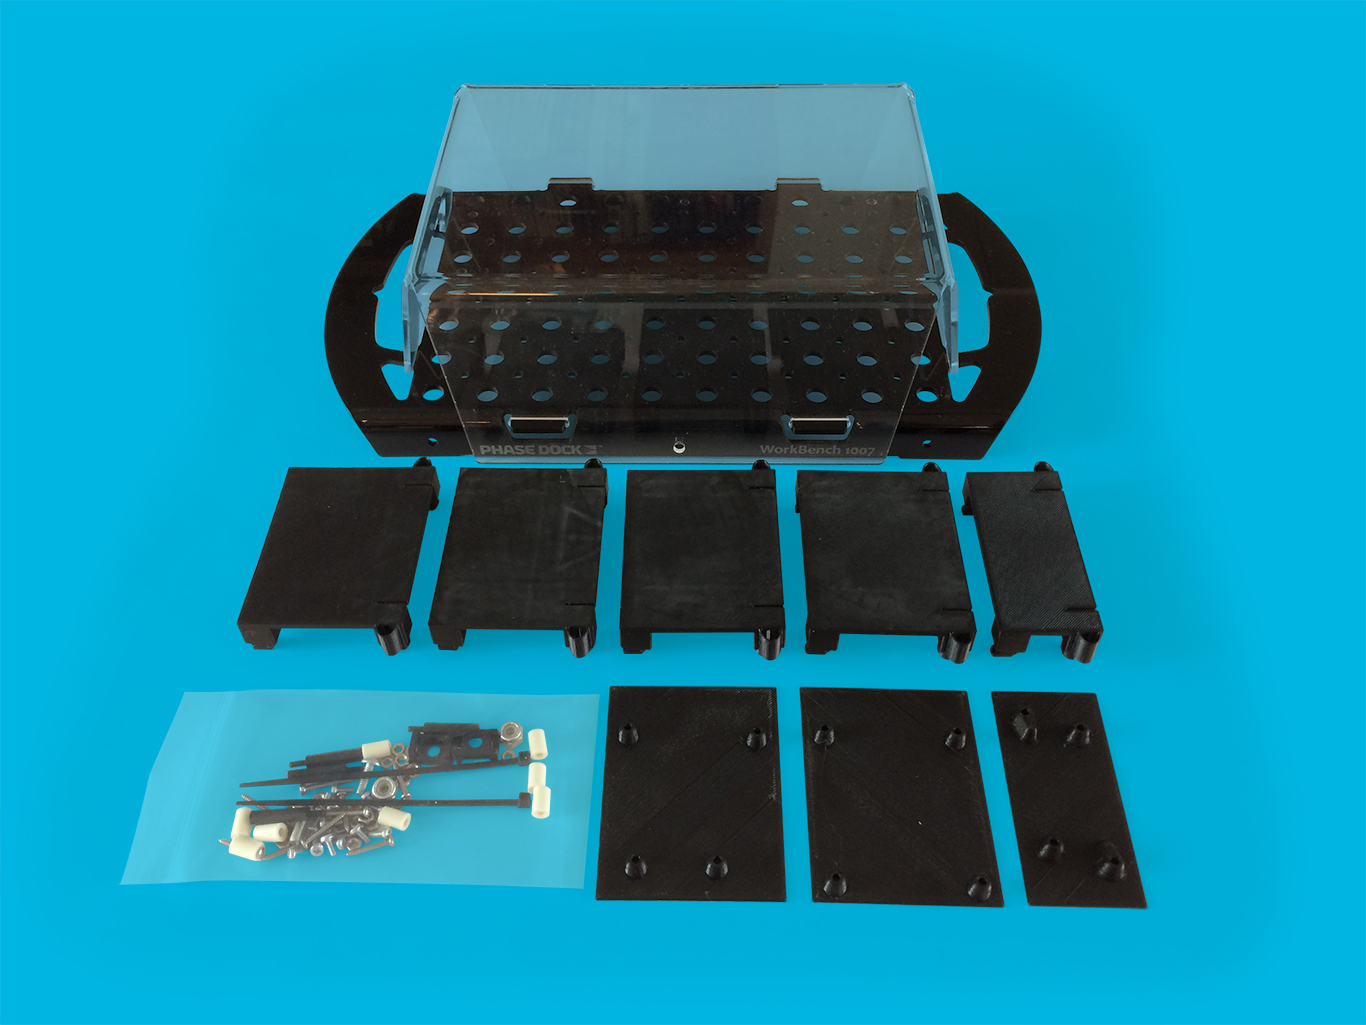 "WorkBench 1007 PDK - You bring the electronics. We provide everything else to make your project look amazing and professional.$69.95 - $79.95Base with 10x7 matrix (54 sq in of work surface)Clear acrylic Cover Five Clicks, 2 sizes (used to mount electronics) Three Slides, adapters for Arduino (1 ea), Raspberry Pi 2/3 (1 ea), and Feather/Particle (1 ea) boards Hardware packet — saves you timeDetailed 1007 Kit contents and specificationsVideo: ""This is WorkBench""Electronics Mounting Guide"